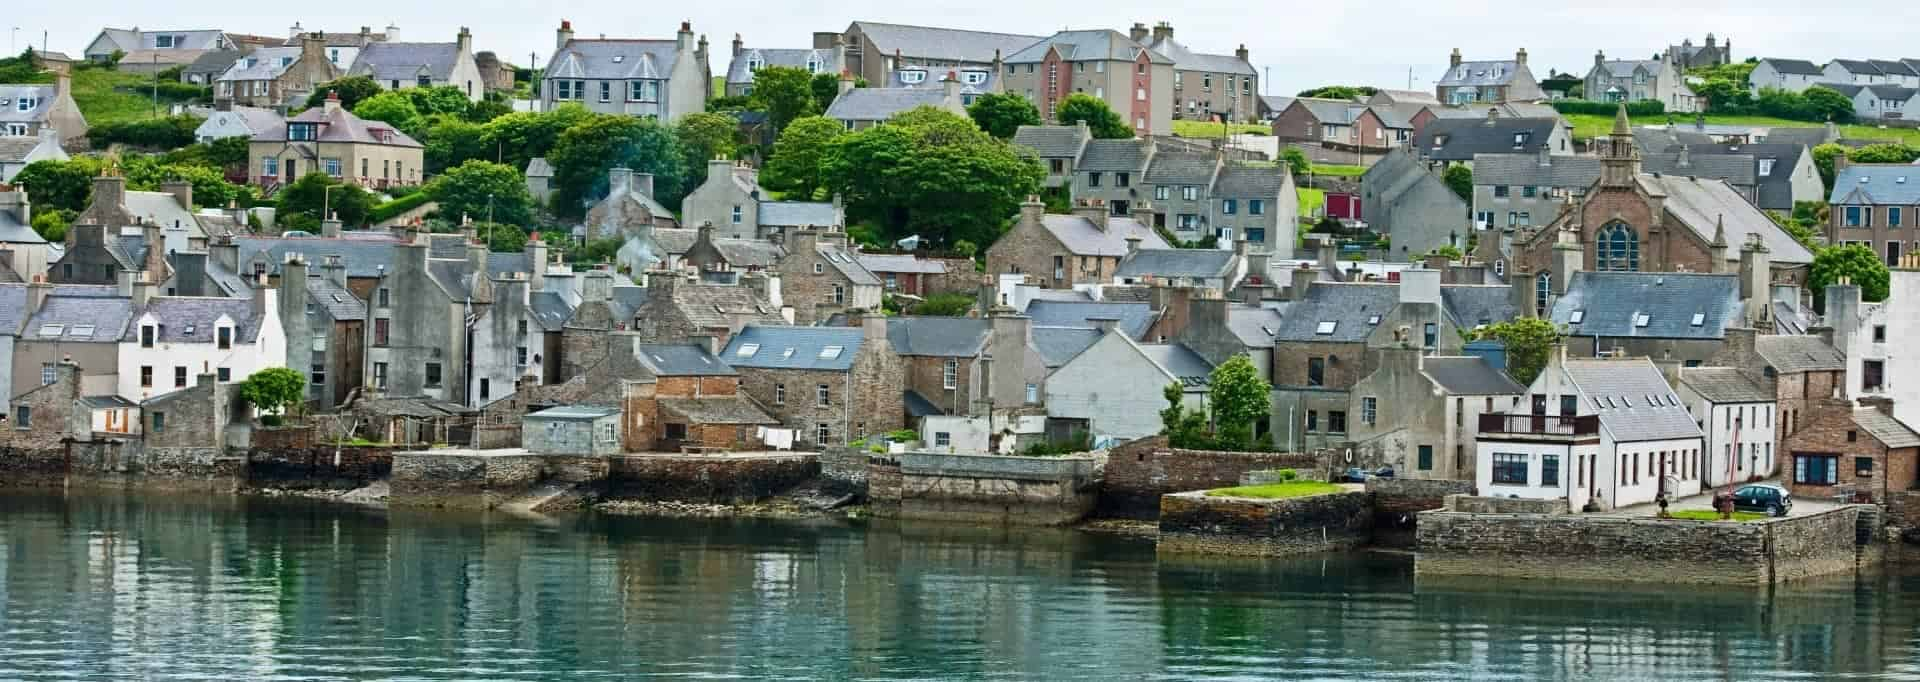 Stromness, Orkney Islands, Scotland